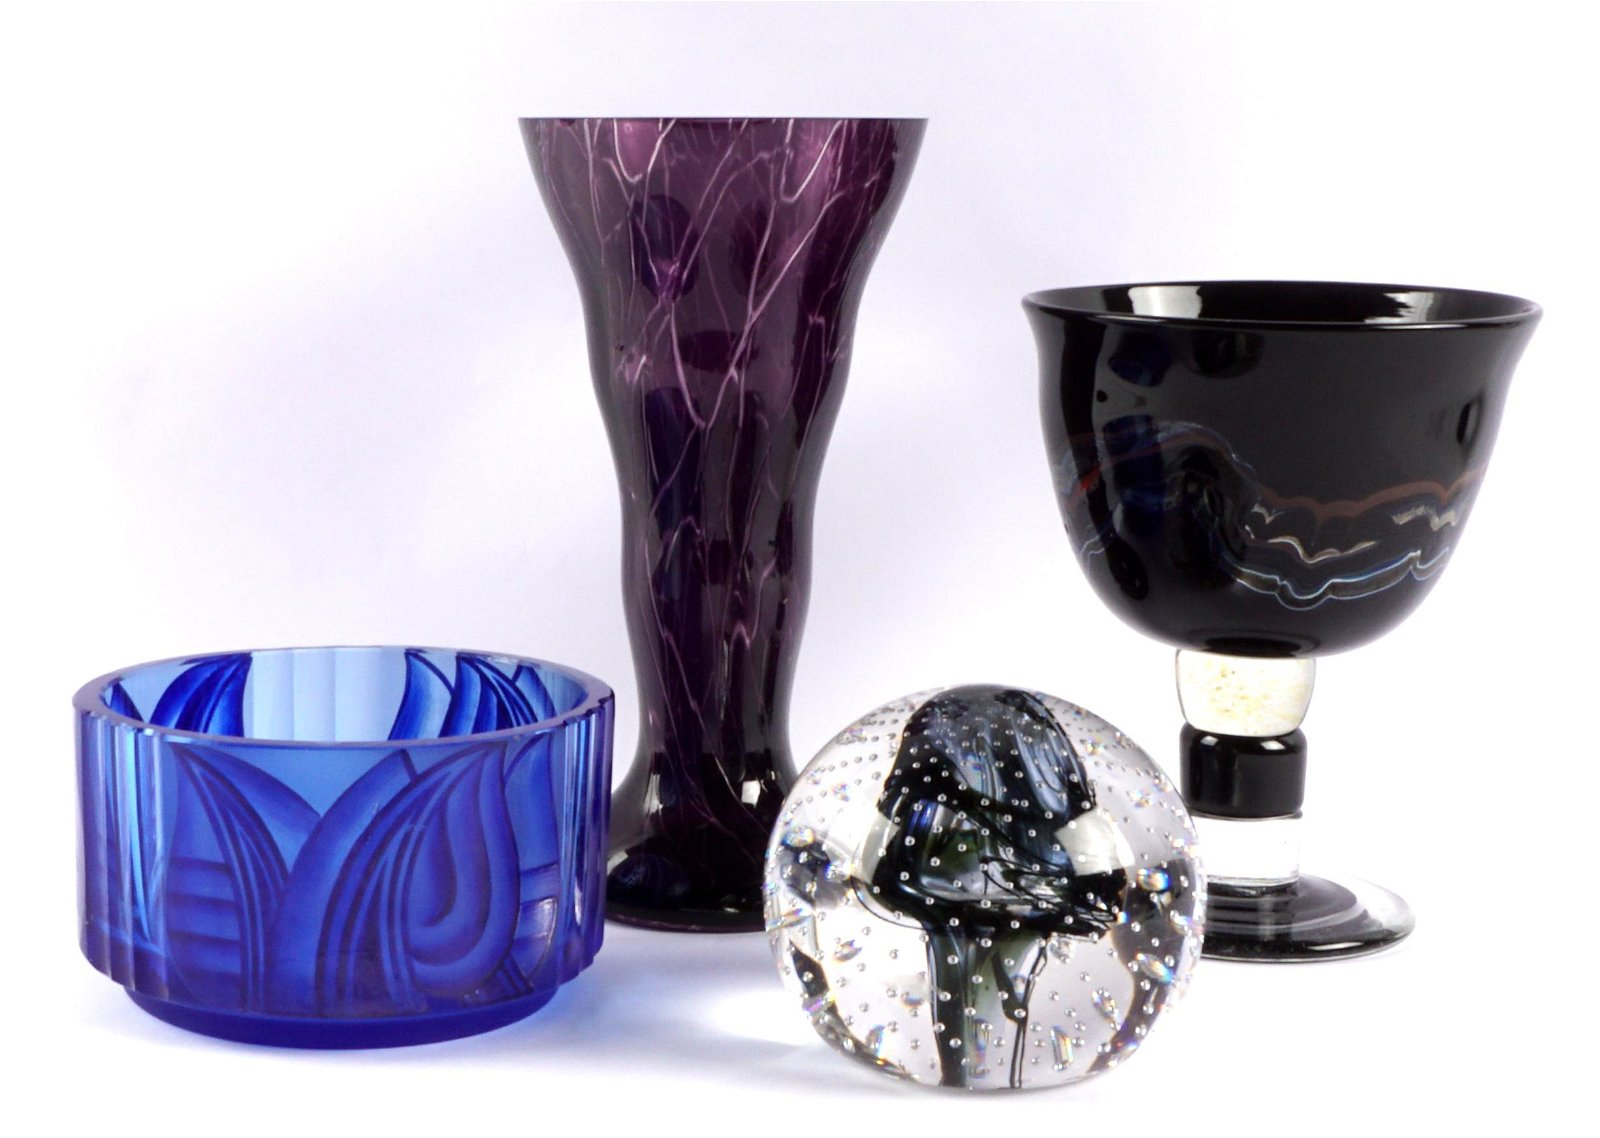 Four Piece Worldly Collection of Art Glass Items